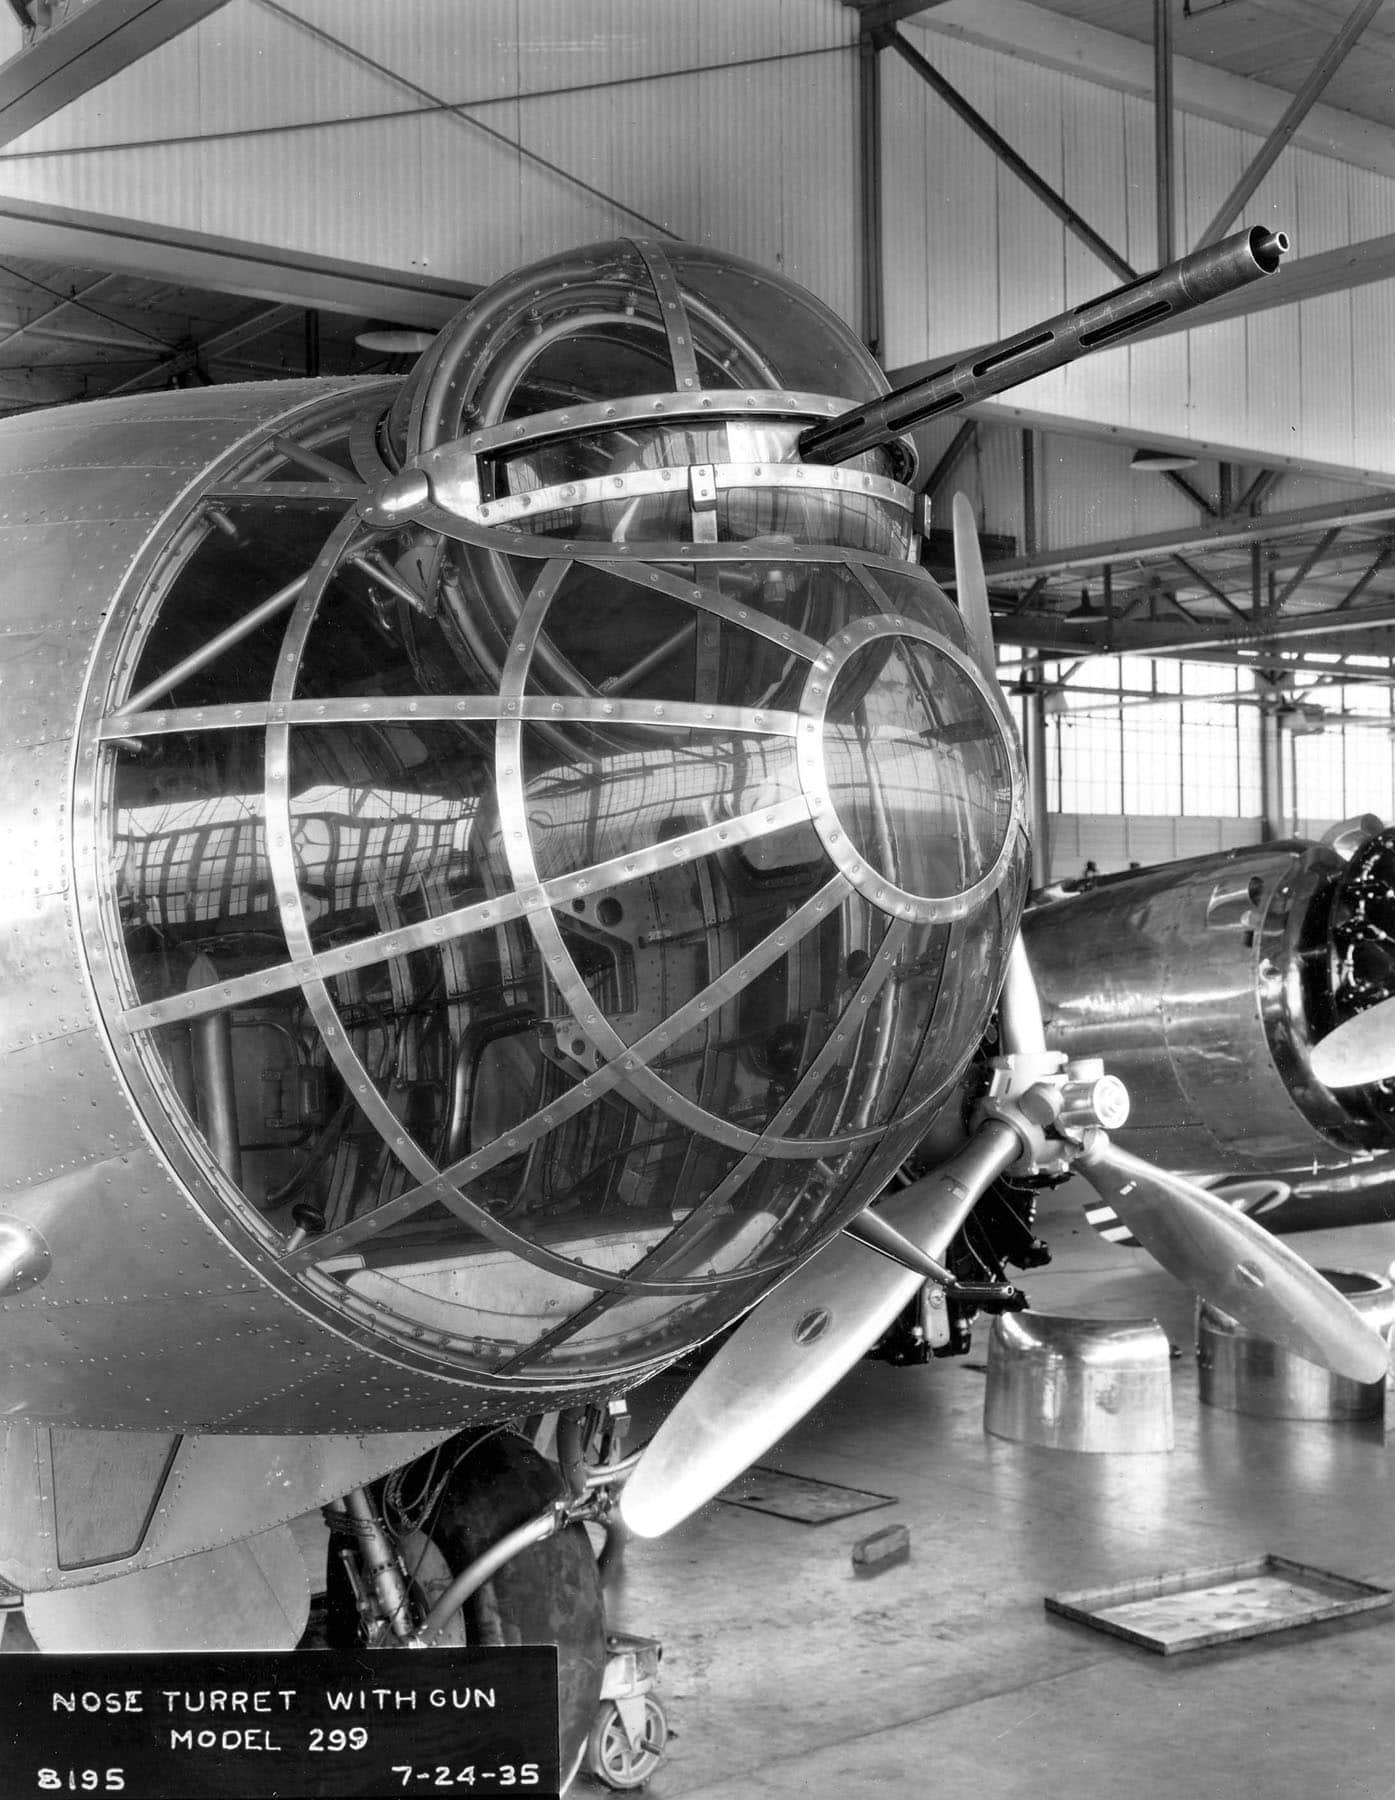 Boeing XB-17 (Model 299) nose turret with gun. (U.S. Air Force photo)